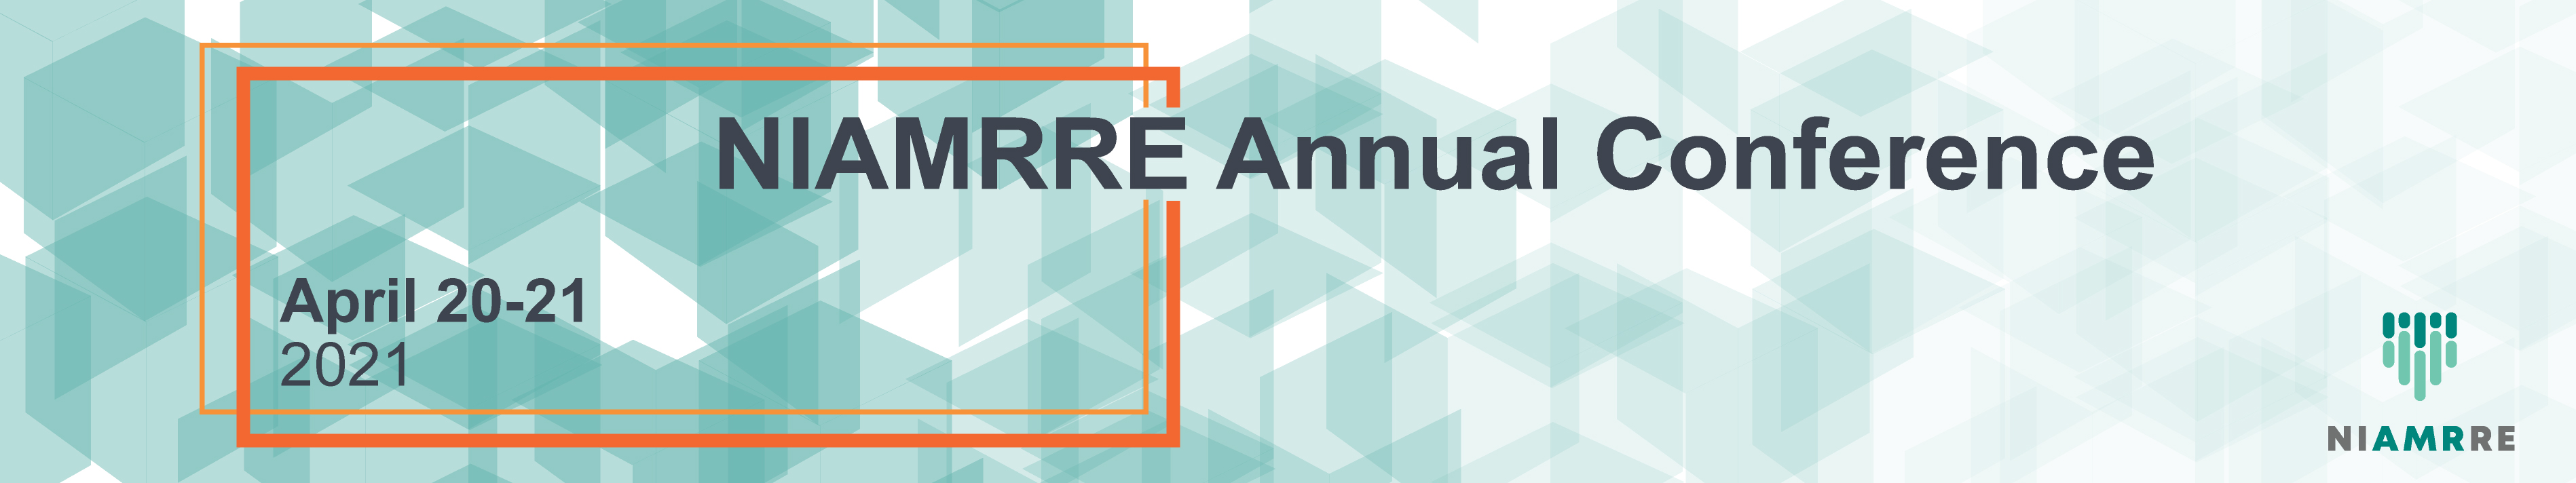 NIAMRRE Annual Conference Banner